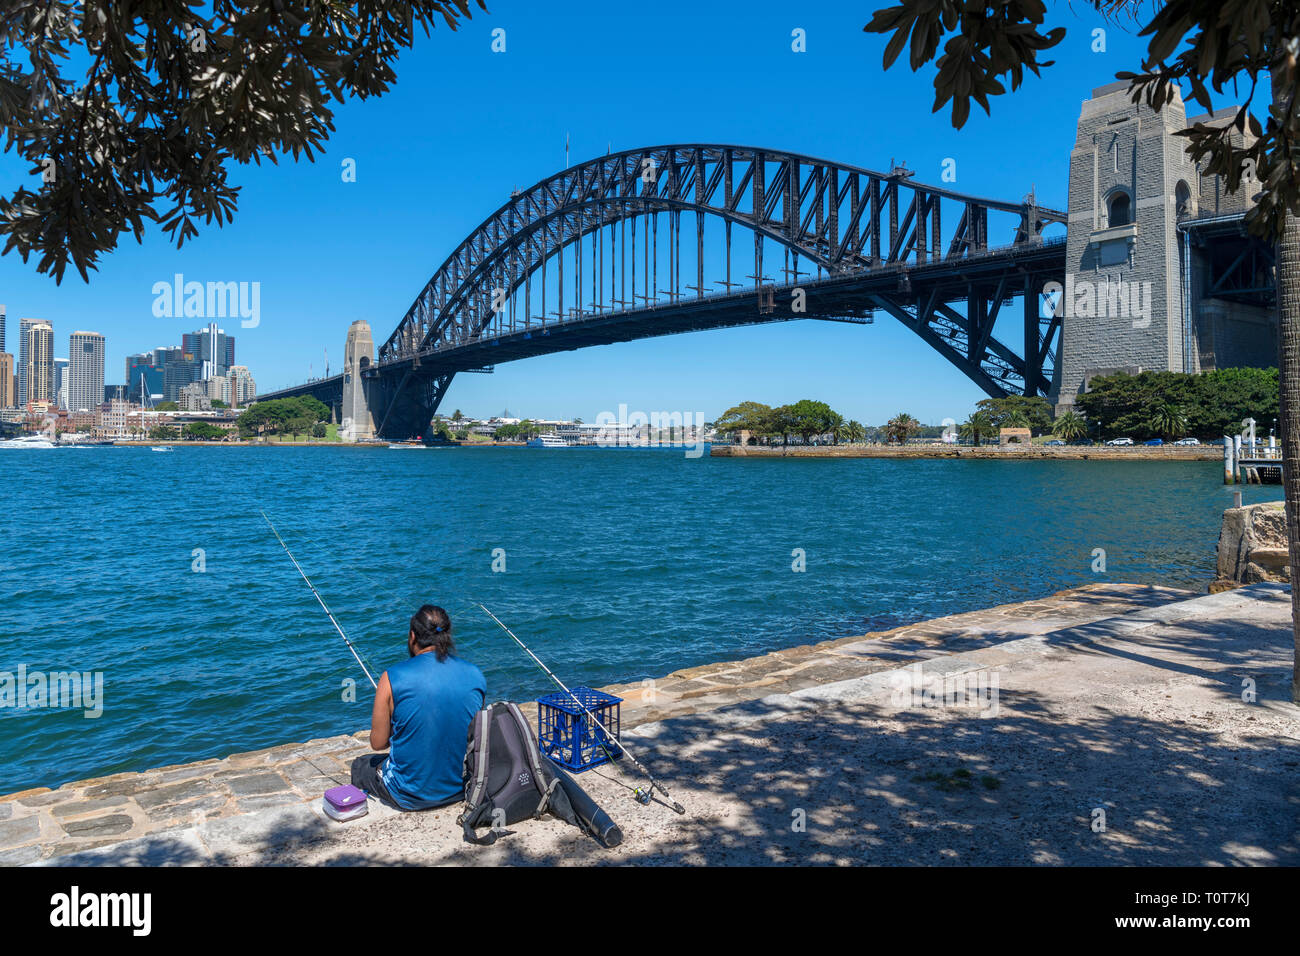 Angler fishing from the waterfront in Kirribilli in front of the Sydney Harbour Bridge, Sydney, Australia - Stock Image